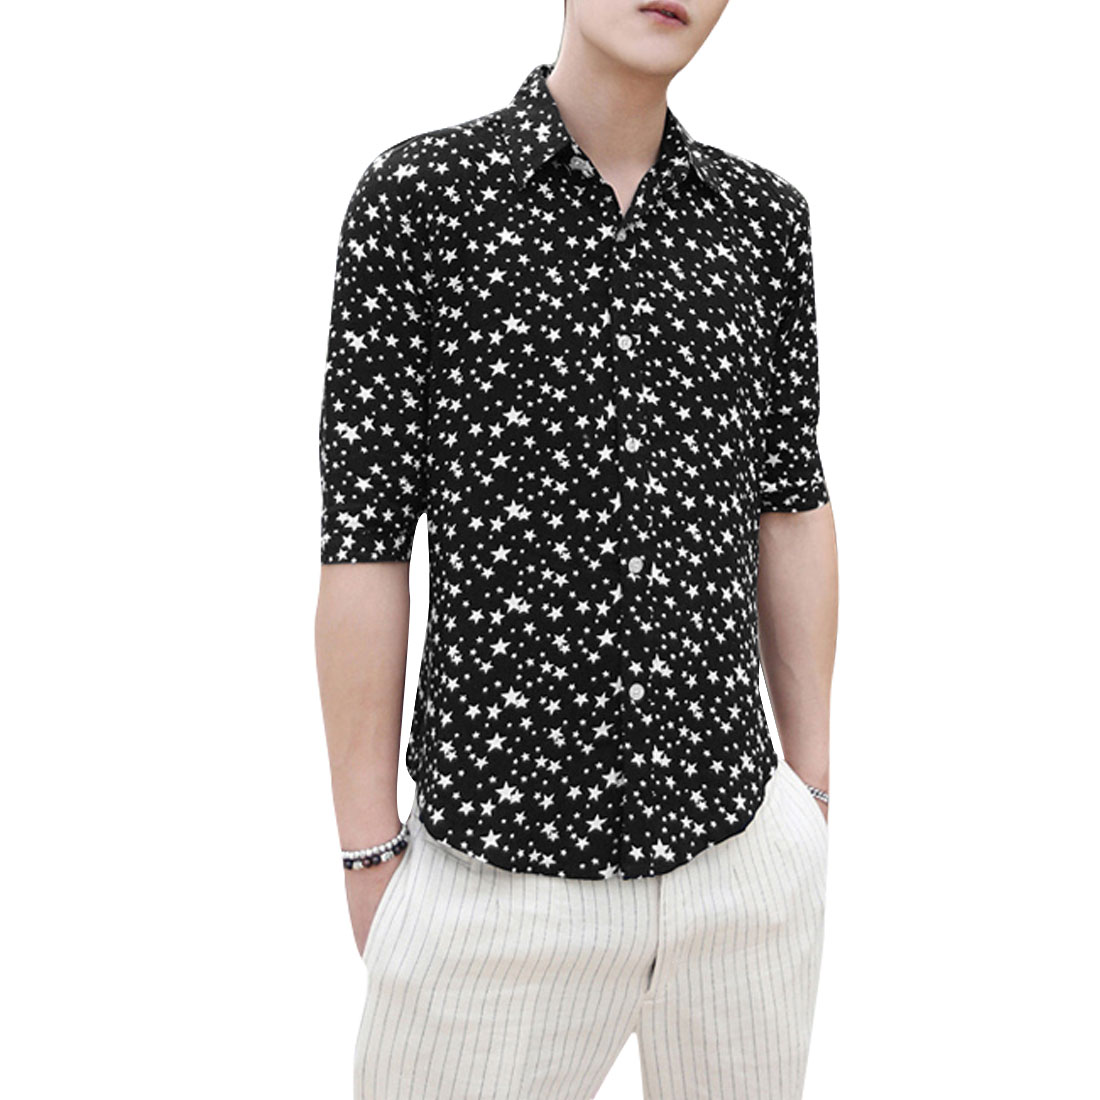 Men Chic Point Collar Buttoned Stars Prints Slim Fit Navy Blue Shirt M